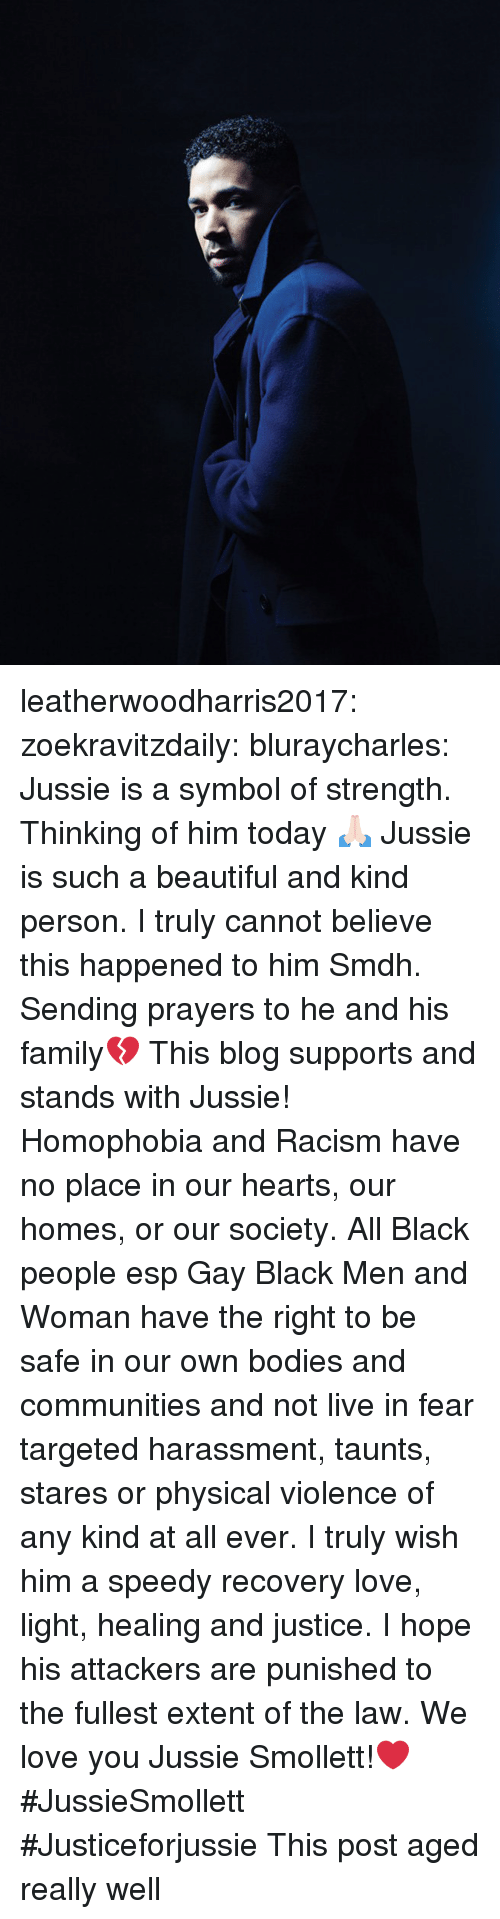 speedy: leatherwoodharris2017:  zoekravitzdaily:  bluraycharles:  Jussie is a symbol of strength. Thinking of him today 🙏🏻  Jussie is such a beautiful and kind person. I truly cannot believe this happened to him Smdh. Sending prayers to he and his family💔  This blog supports and stands with Jussie! Homophobia and Racism have no place in our hearts, our homes, or our society.  All Black people esp Gay Black Men and Woman have the right to be safe in our own bodies and communities and not live in fear targeted harassment, taunts, stares or physical violence of any kind at all ever. I truly wish him a speedy recovery love, light, healing and justice. I hope his attackers are punished to the fullest extent of the law. We love you Jussie Smollett!❤ #JussieSmollett  #Justiceforjussie   This post aged really well